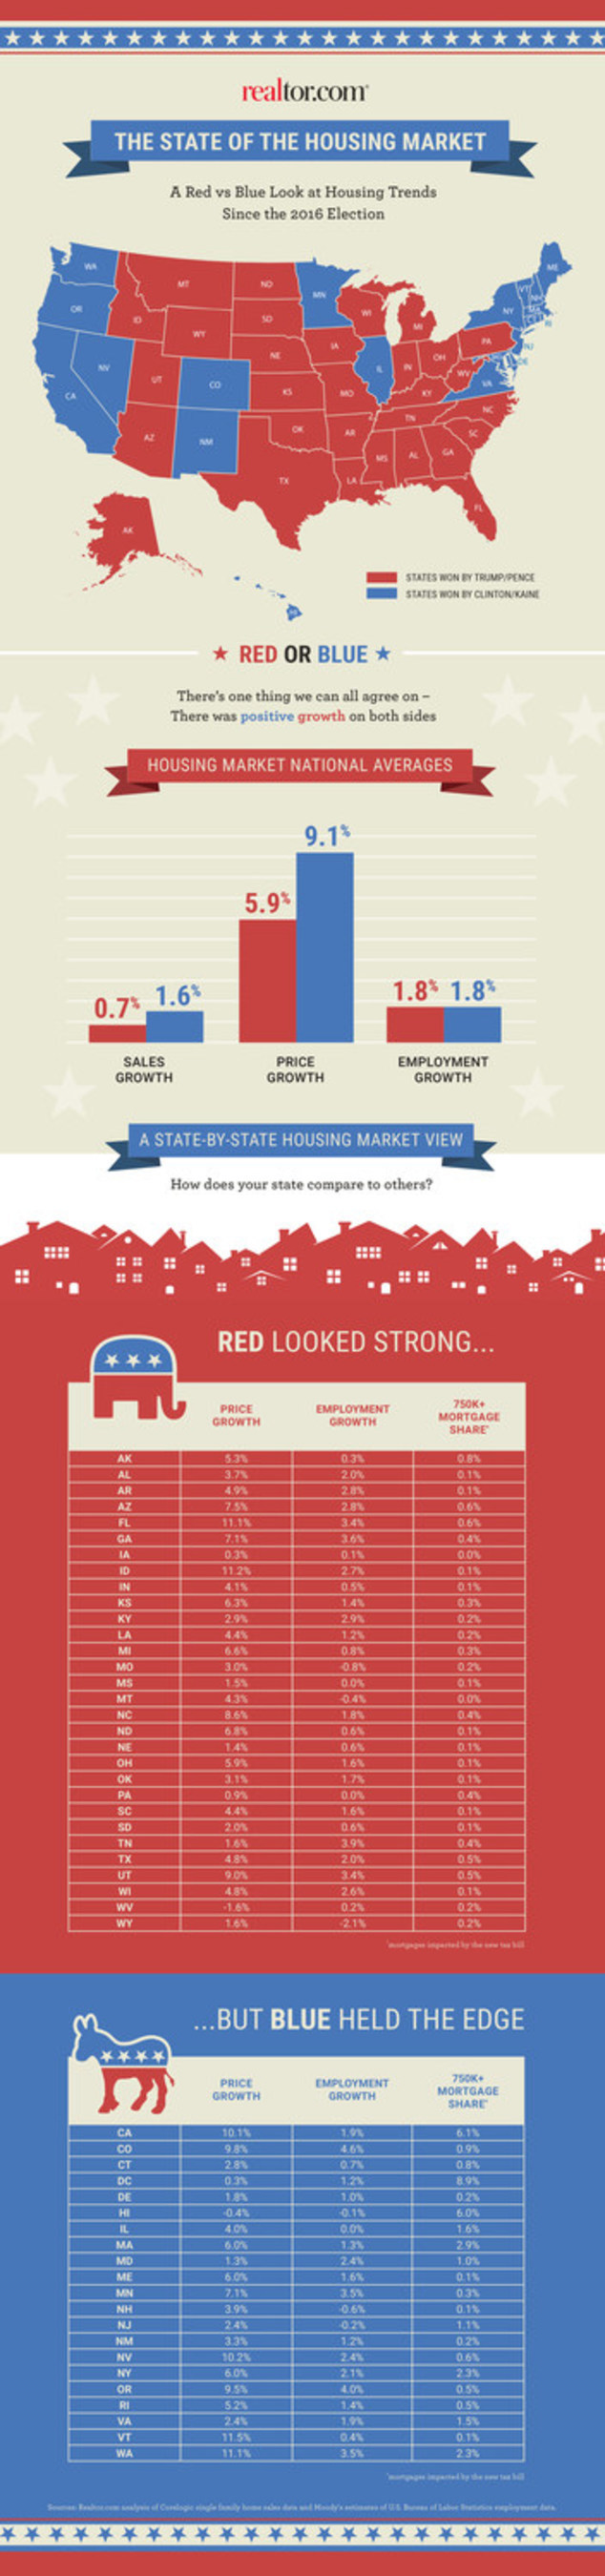 Realtor.com State of the Housing Union infographic